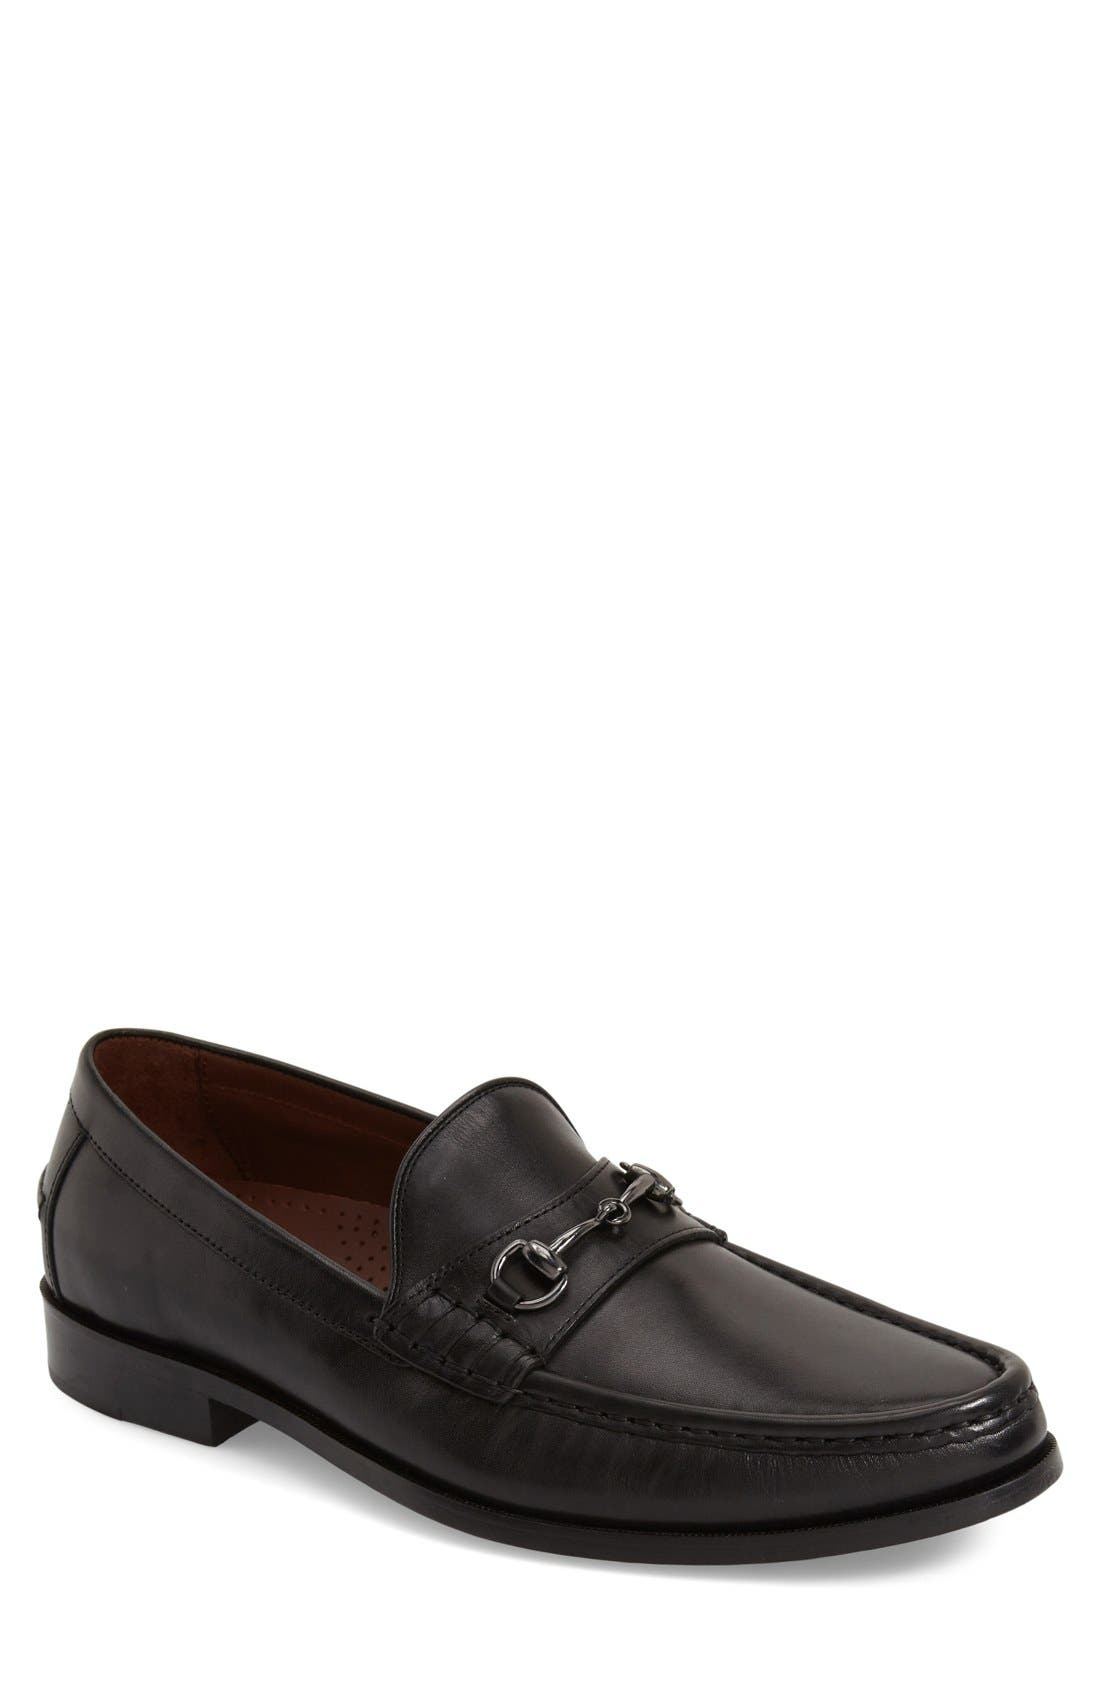 Pinch Gotham Bit Loafer,                         Main,                         color, Black Leather